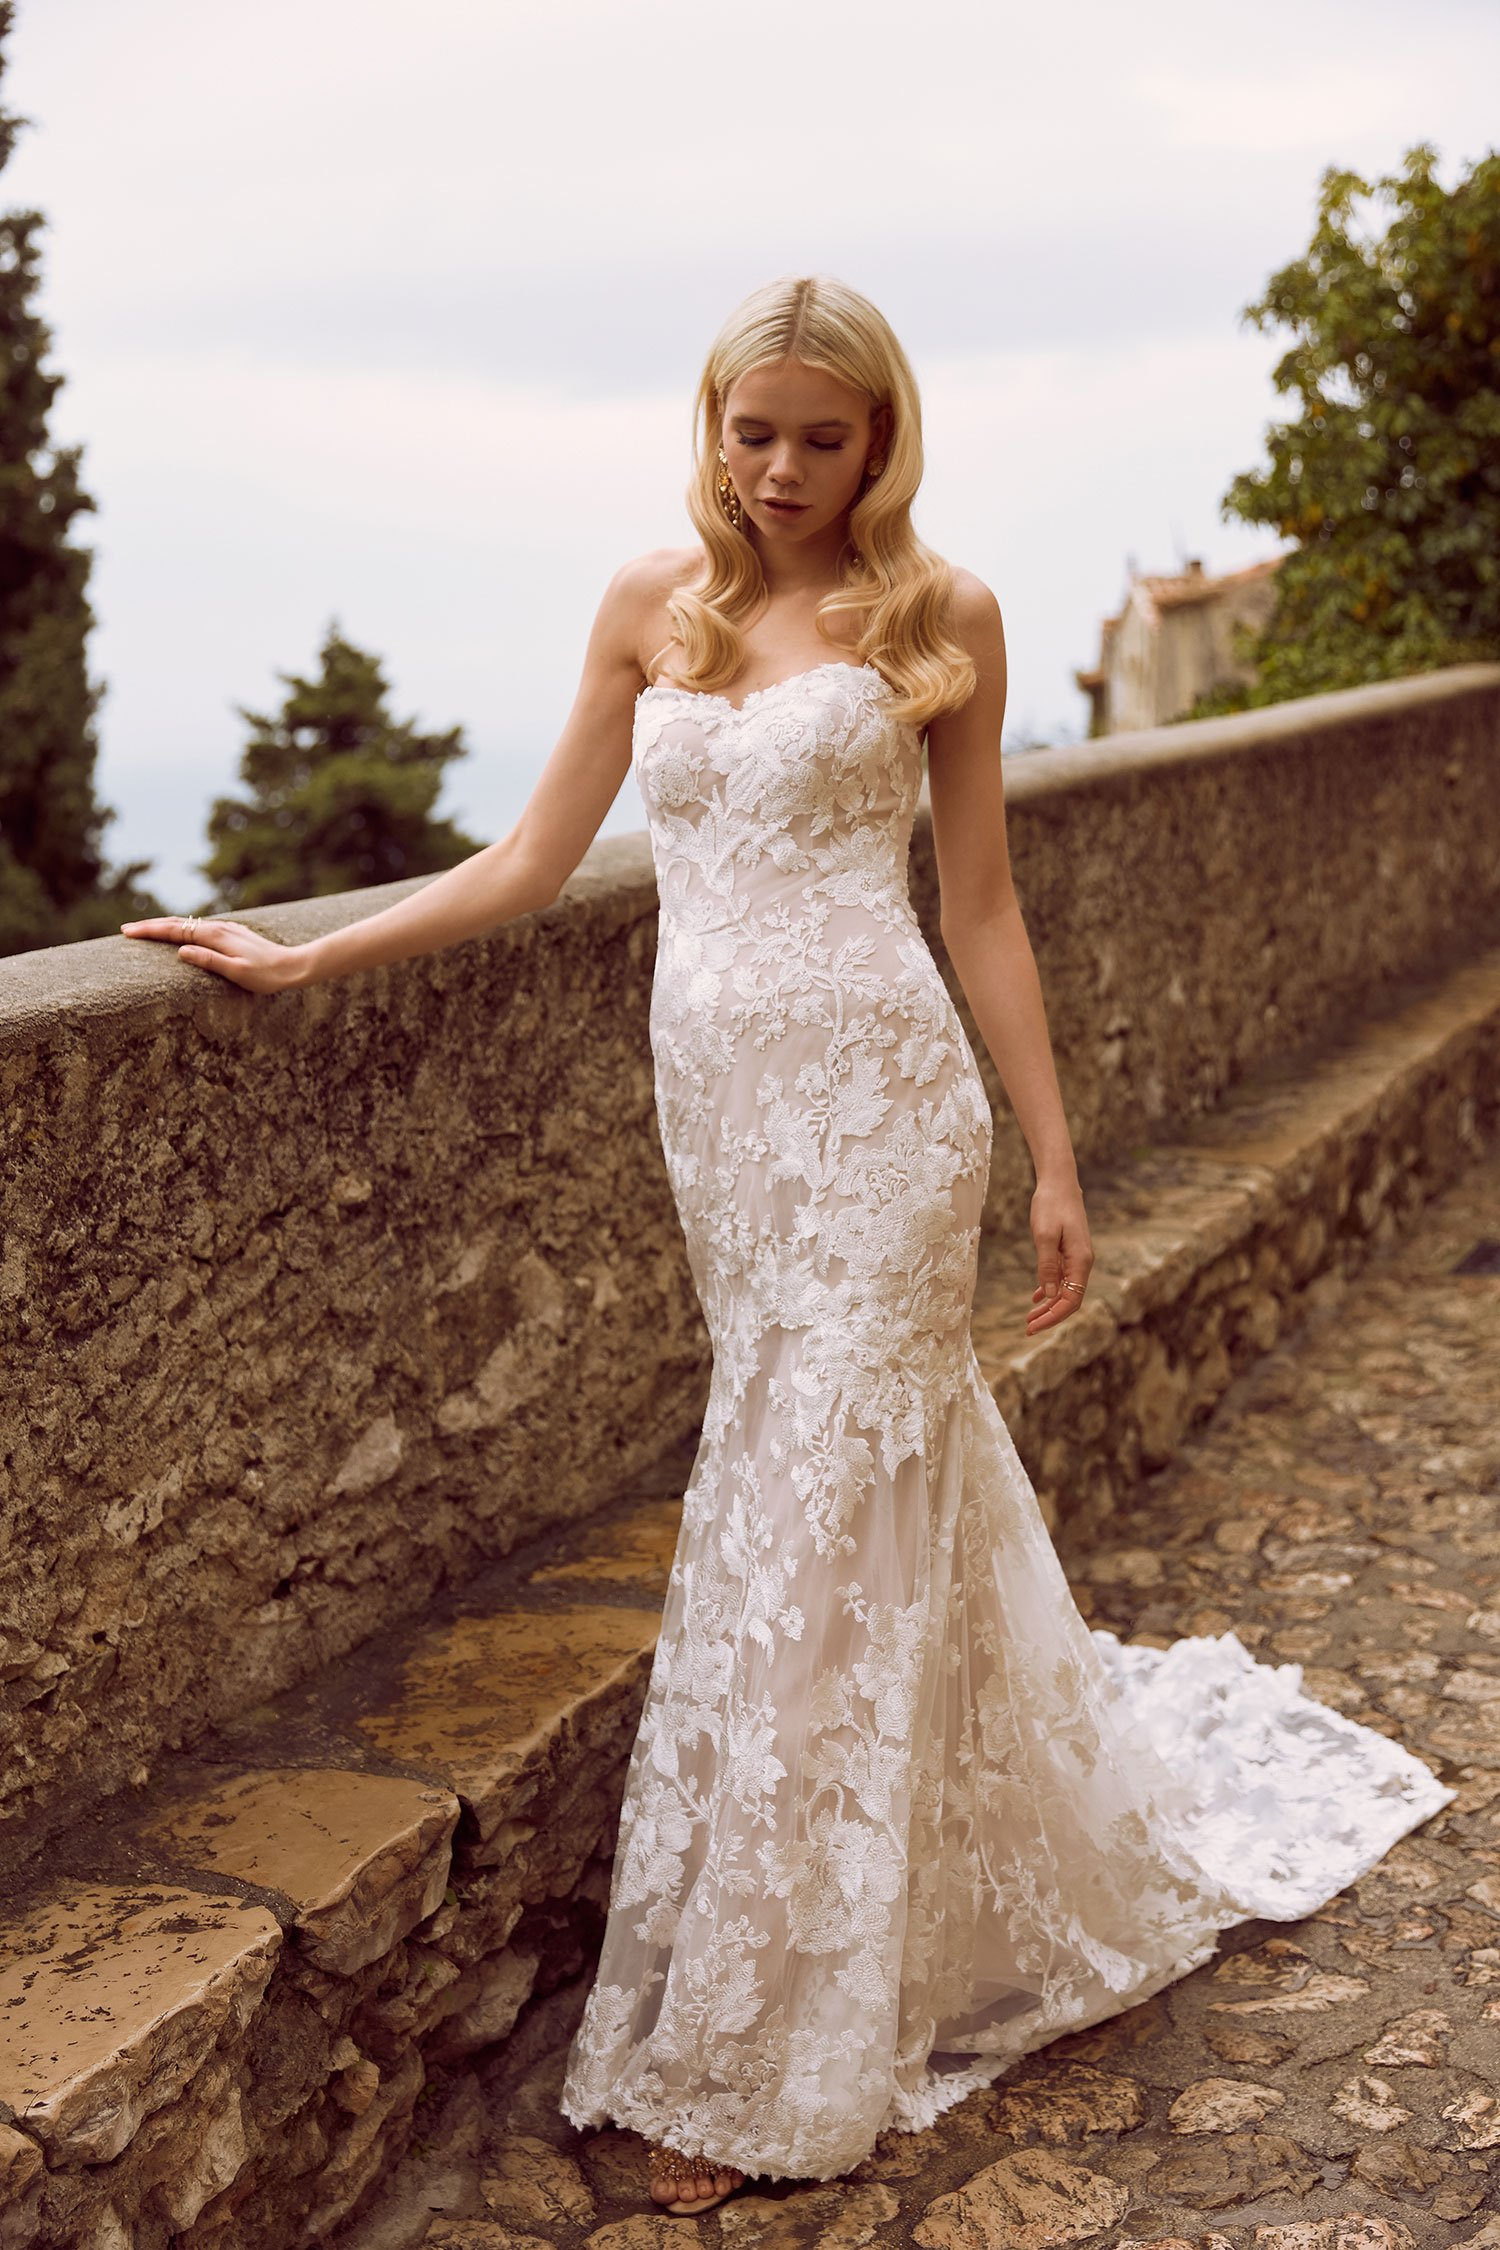 HALLE–ML8319-FULL-LACE-FITTED-GOWN-WITH-SWEETHEART-NECKLINE-AND-ZIP-UP-BACK-DETACHABLE-OFF-SHOULDER-FLUTTER-SLEEVES-WEDDING-DRESS-MADI-LANE-BRIDAL10